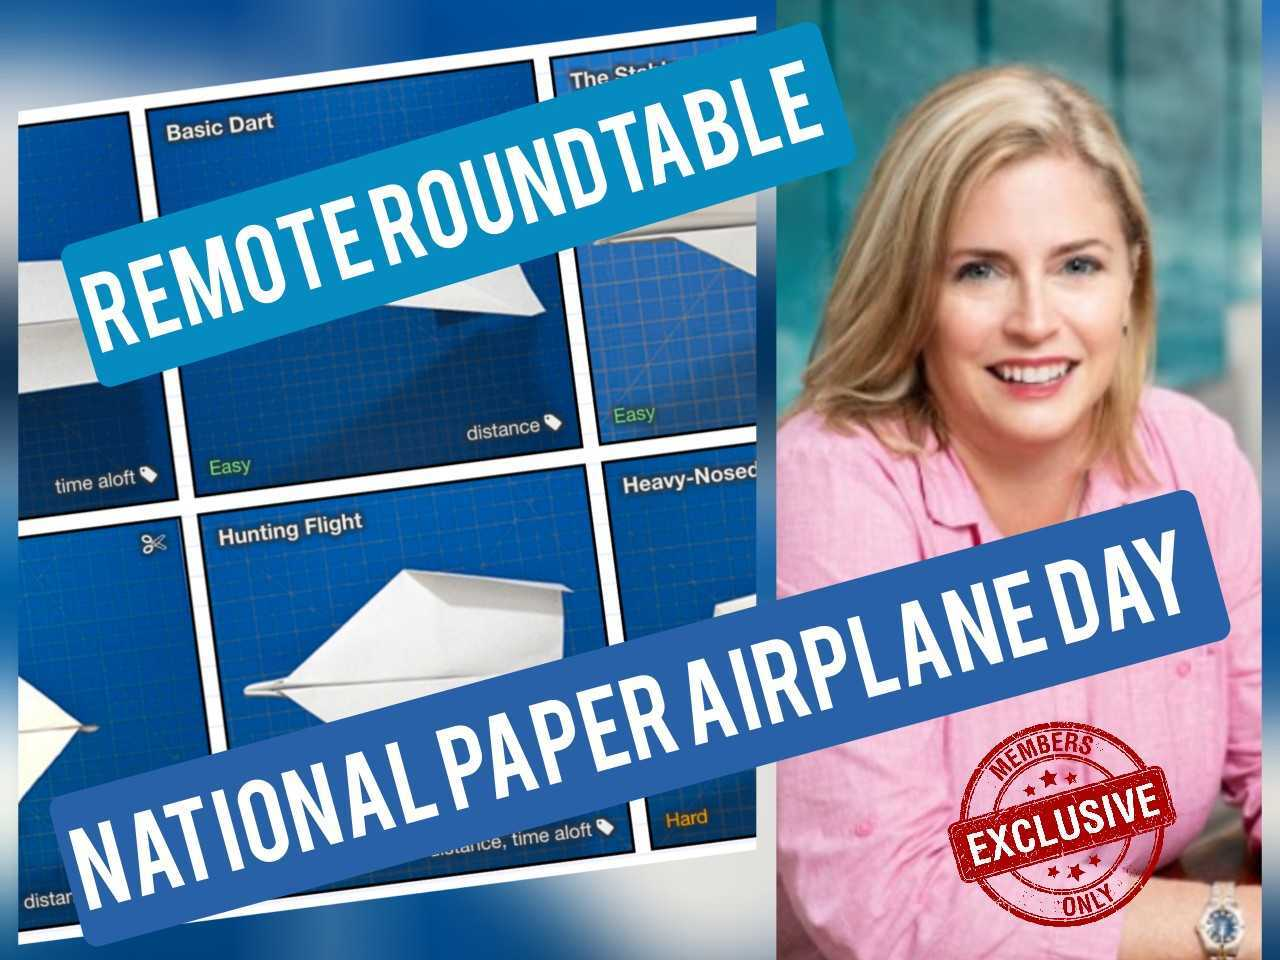 Remote Rountable - National Paper Airplanes